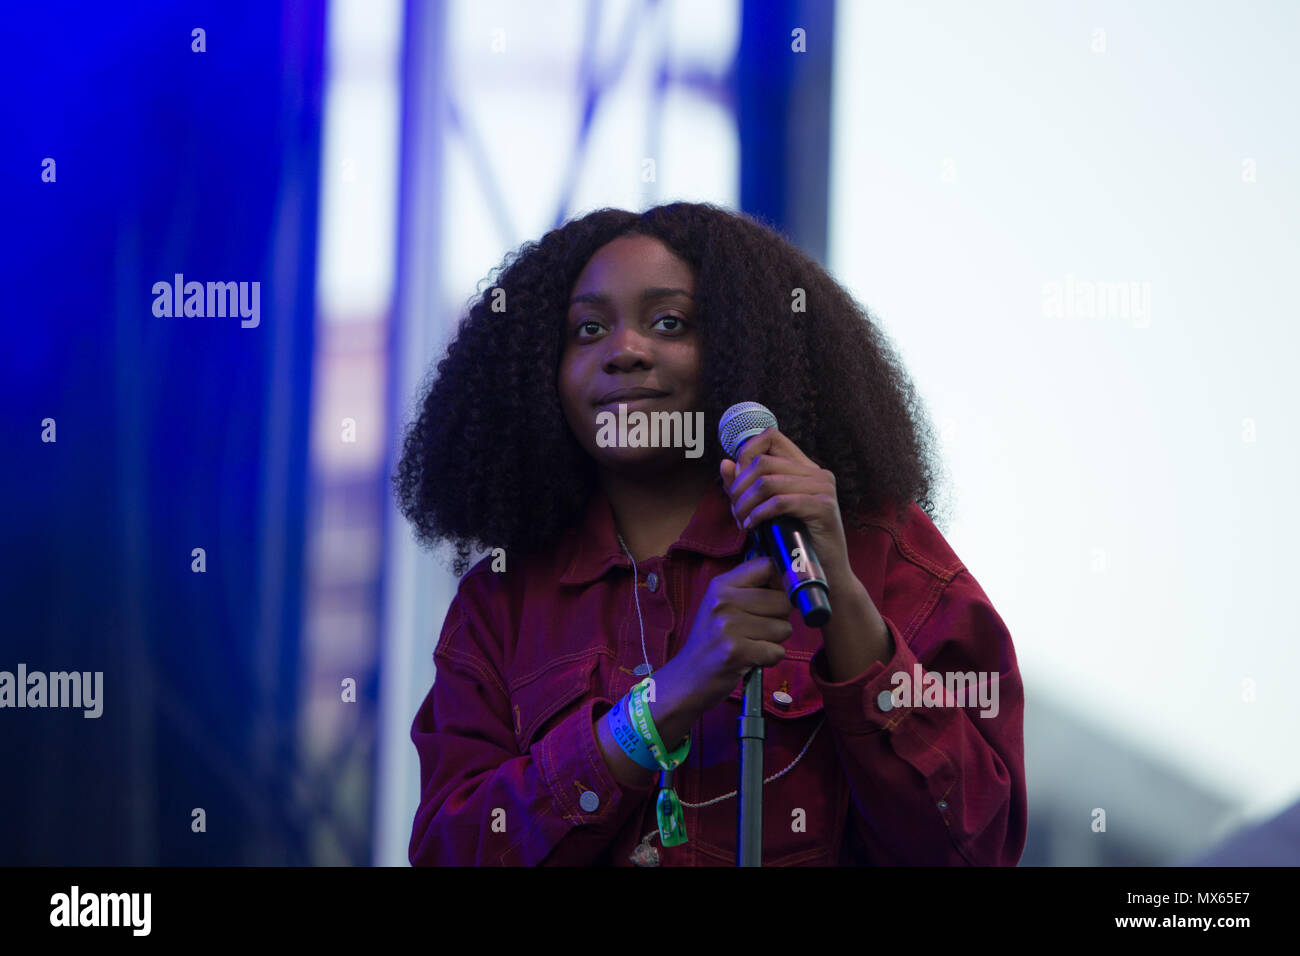 Toronto, Canada, 02nd June, 2018. Chicago rapper Noname, real name, Fatimah Nyeema Warner performs at the 2018 Field Trip Music & Arts Festival in Toronto, Canada. Credit: topconcertphoto/Alamy Live News - Stock Image